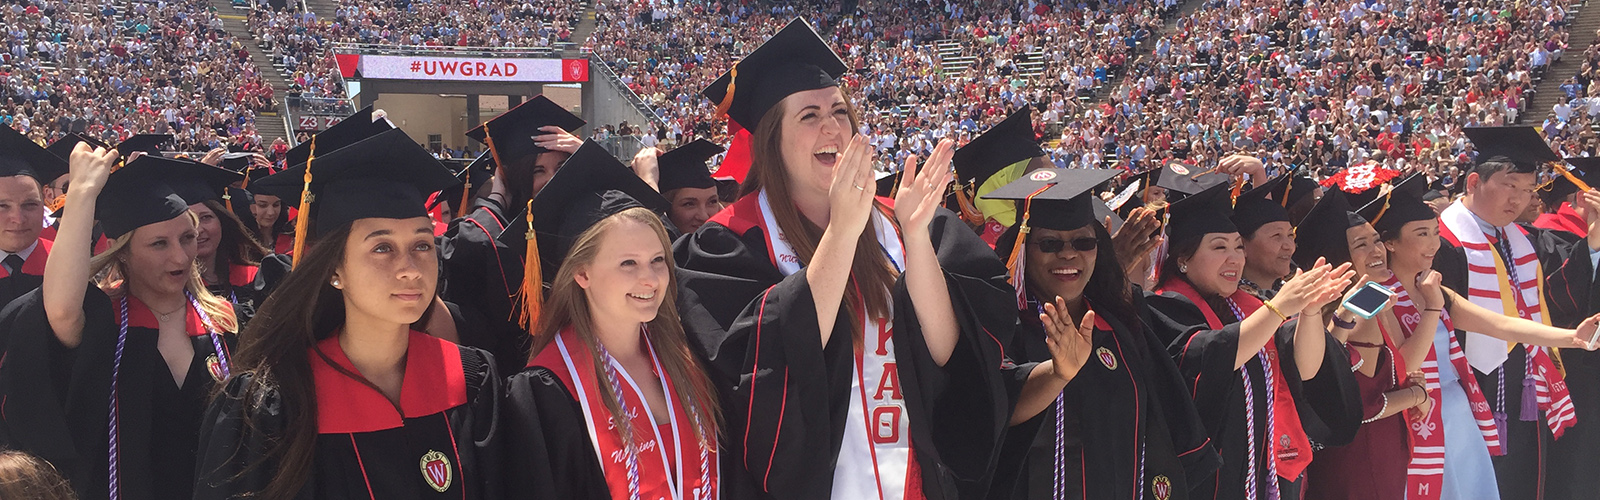 Commencement ceremony at Camp Randall Stadium School of Nursing graduates